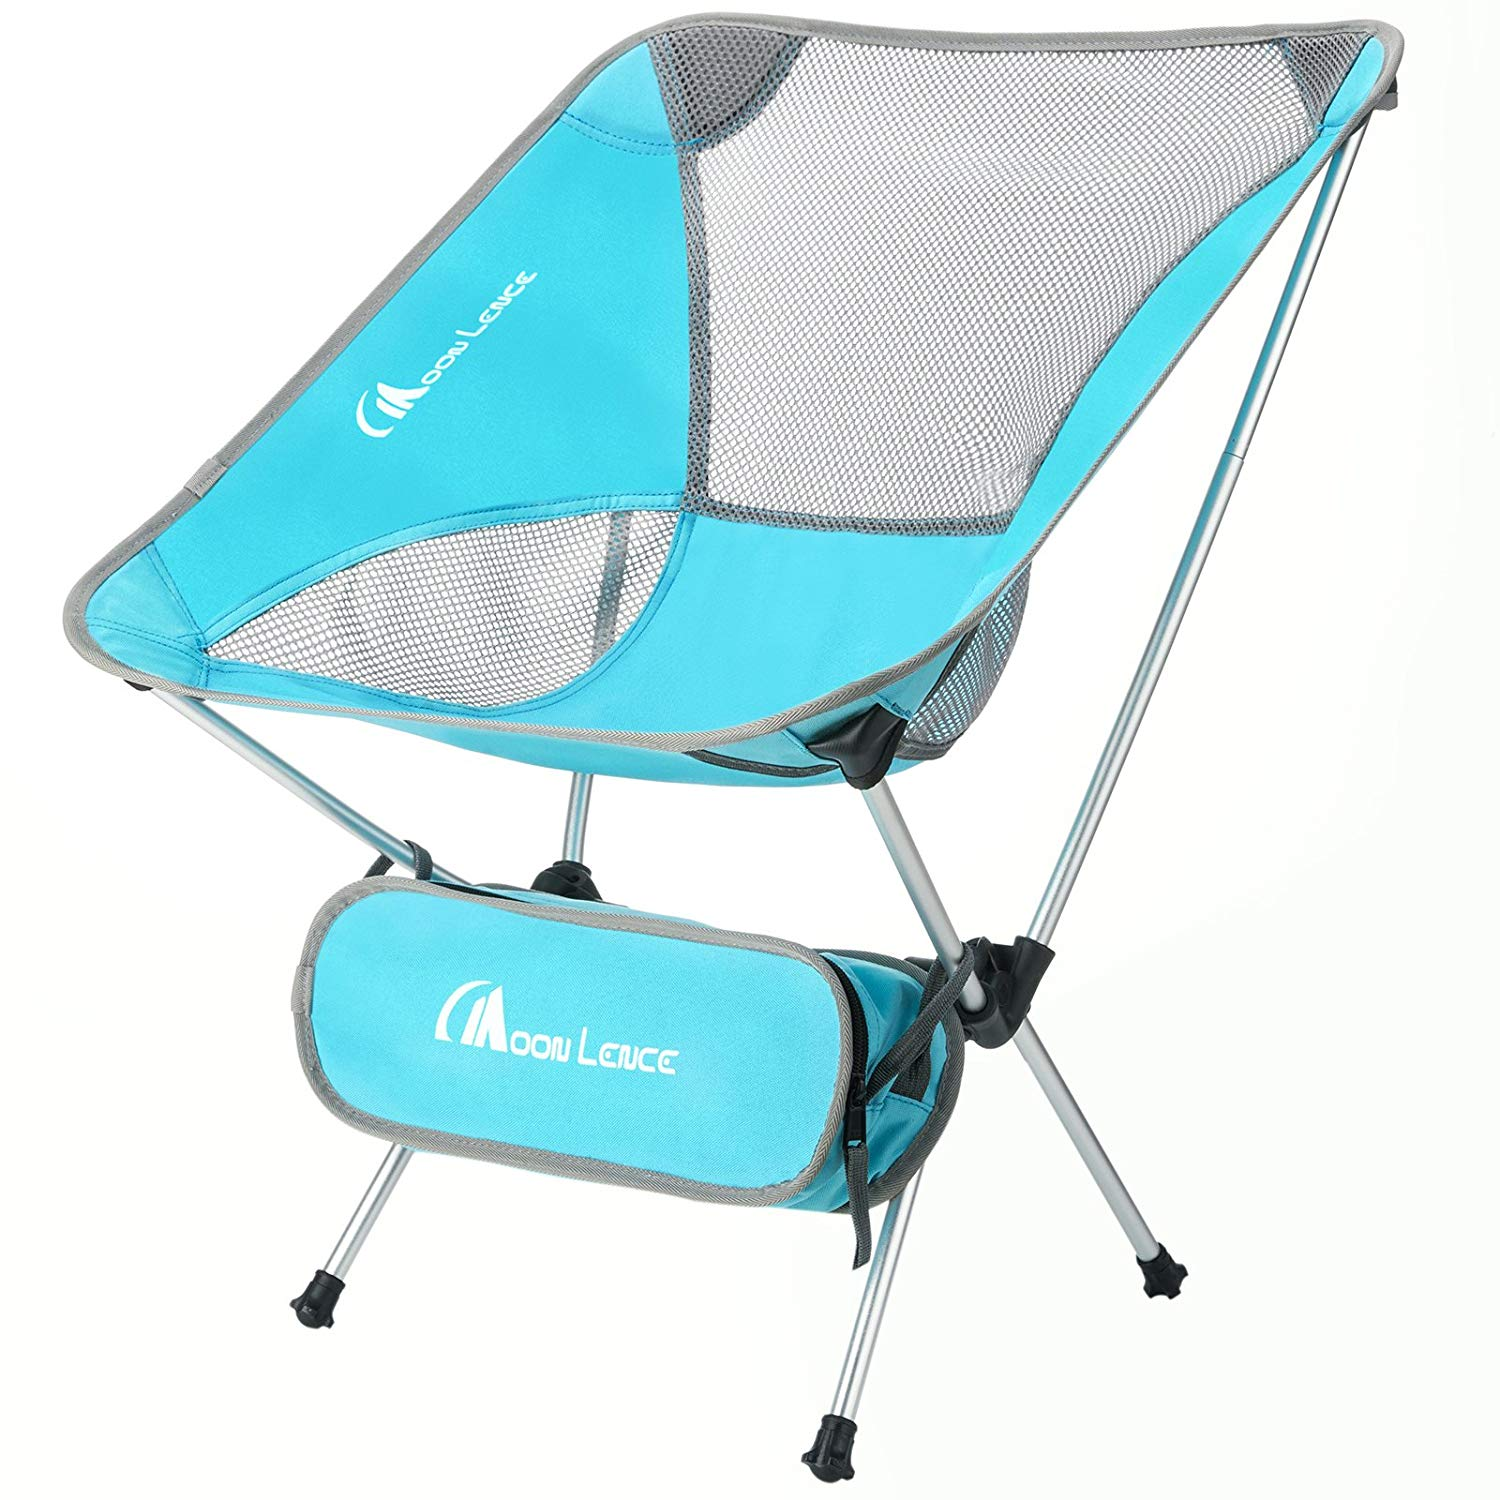 Ultralight Portable Folding Chair With Carry Bag